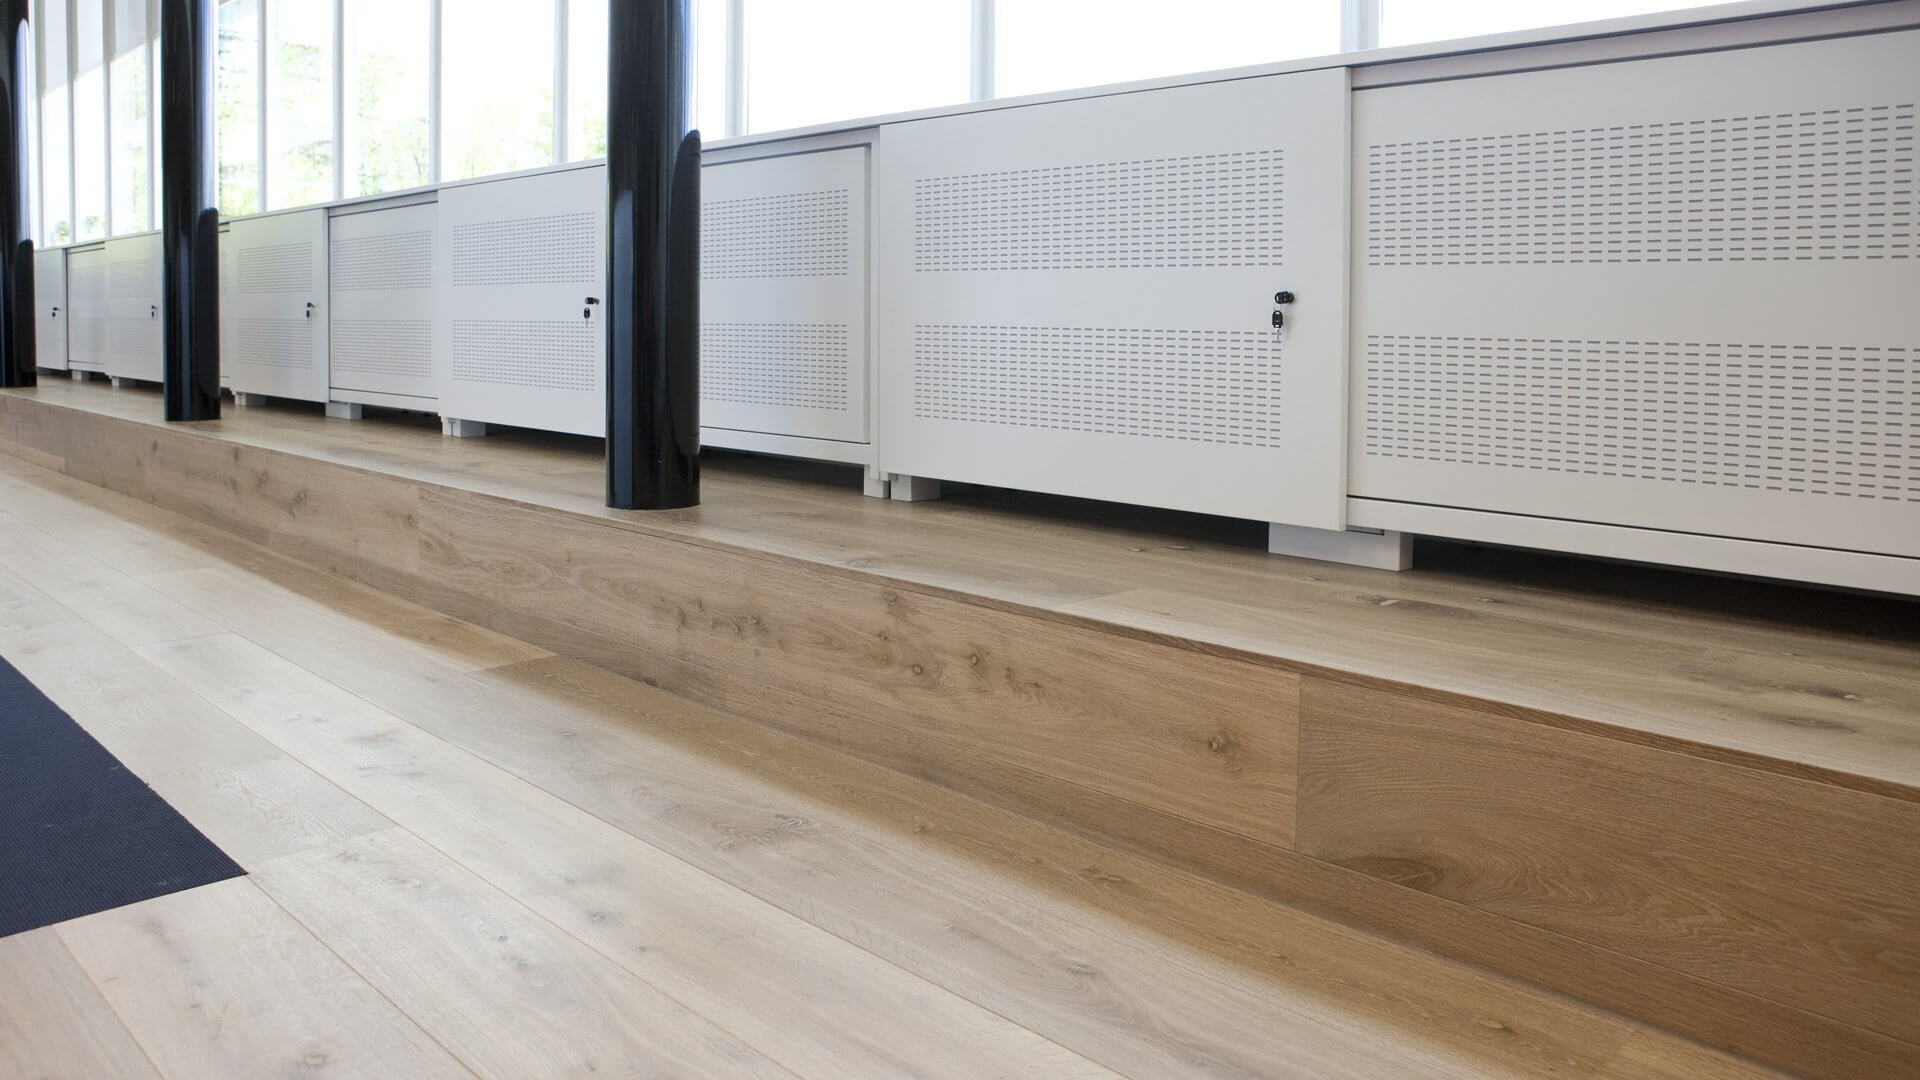 Office wood flooring in Hilversum, The Netherlands